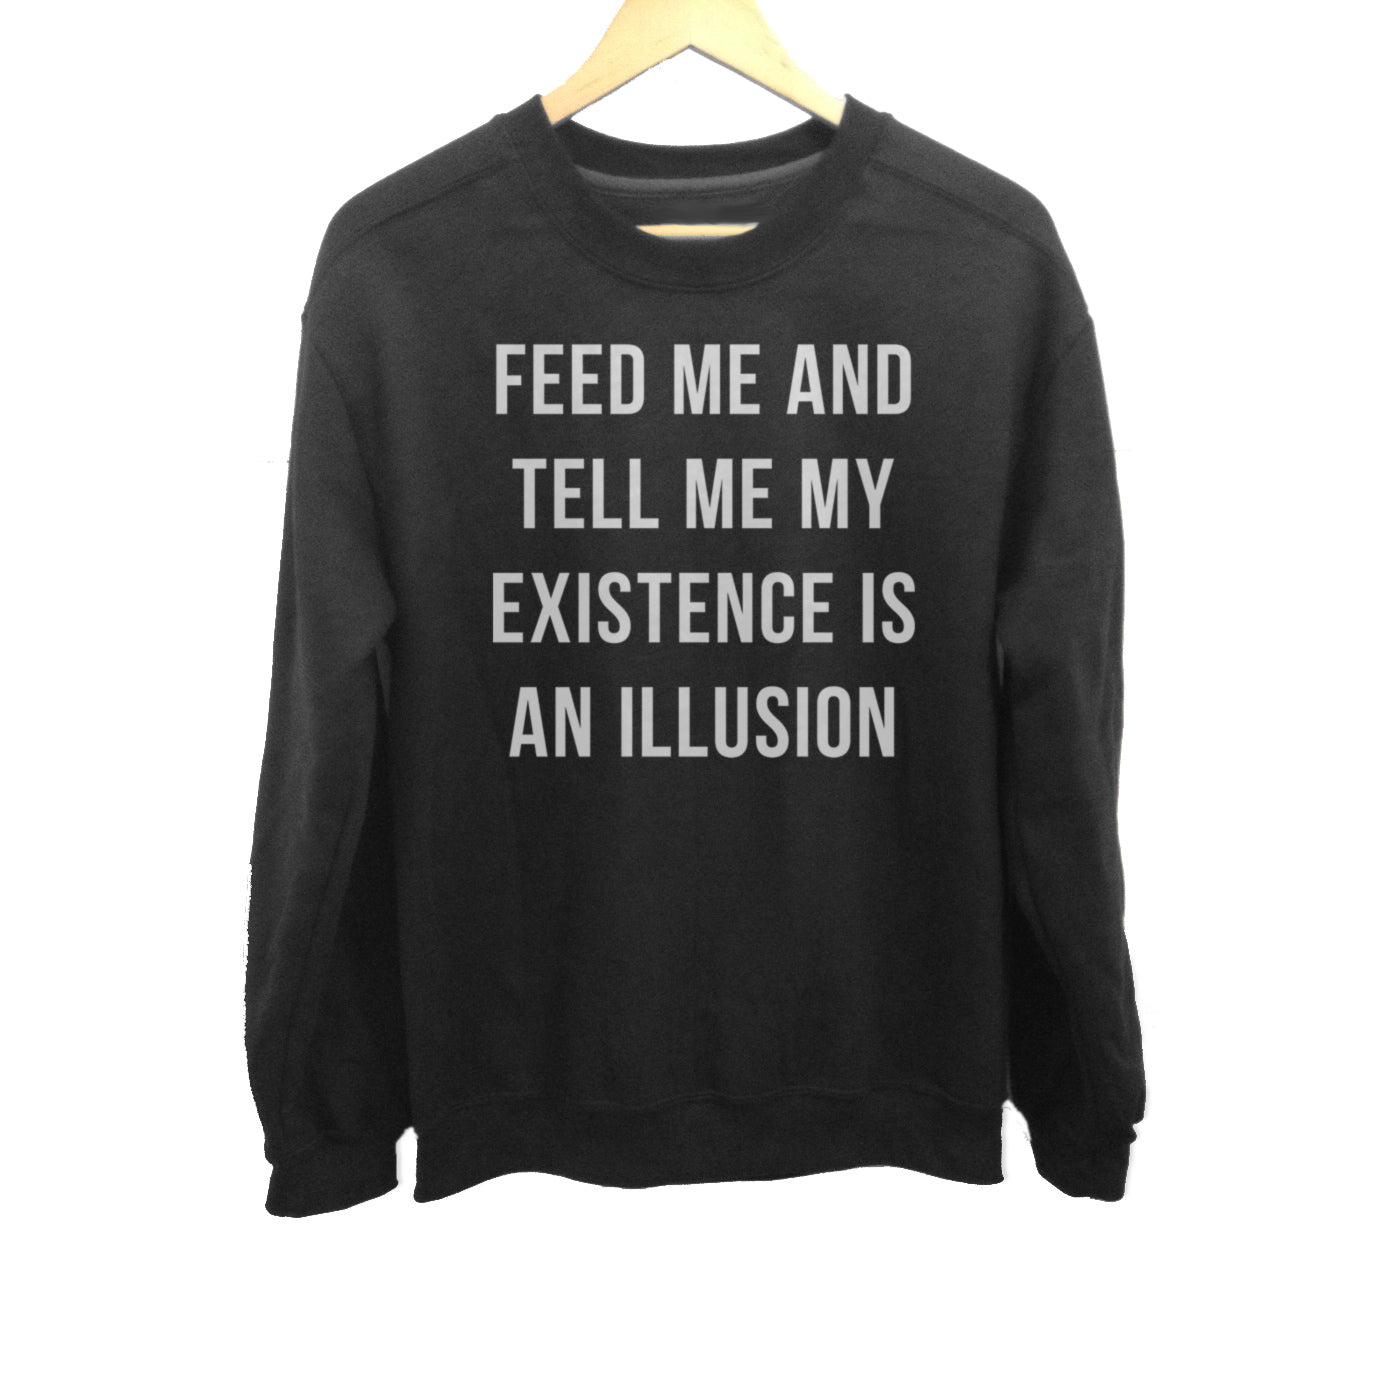 Unisex Feed Me and Tell Me My Existence is an Illusion Sweatshirt - Existentialism Shirt